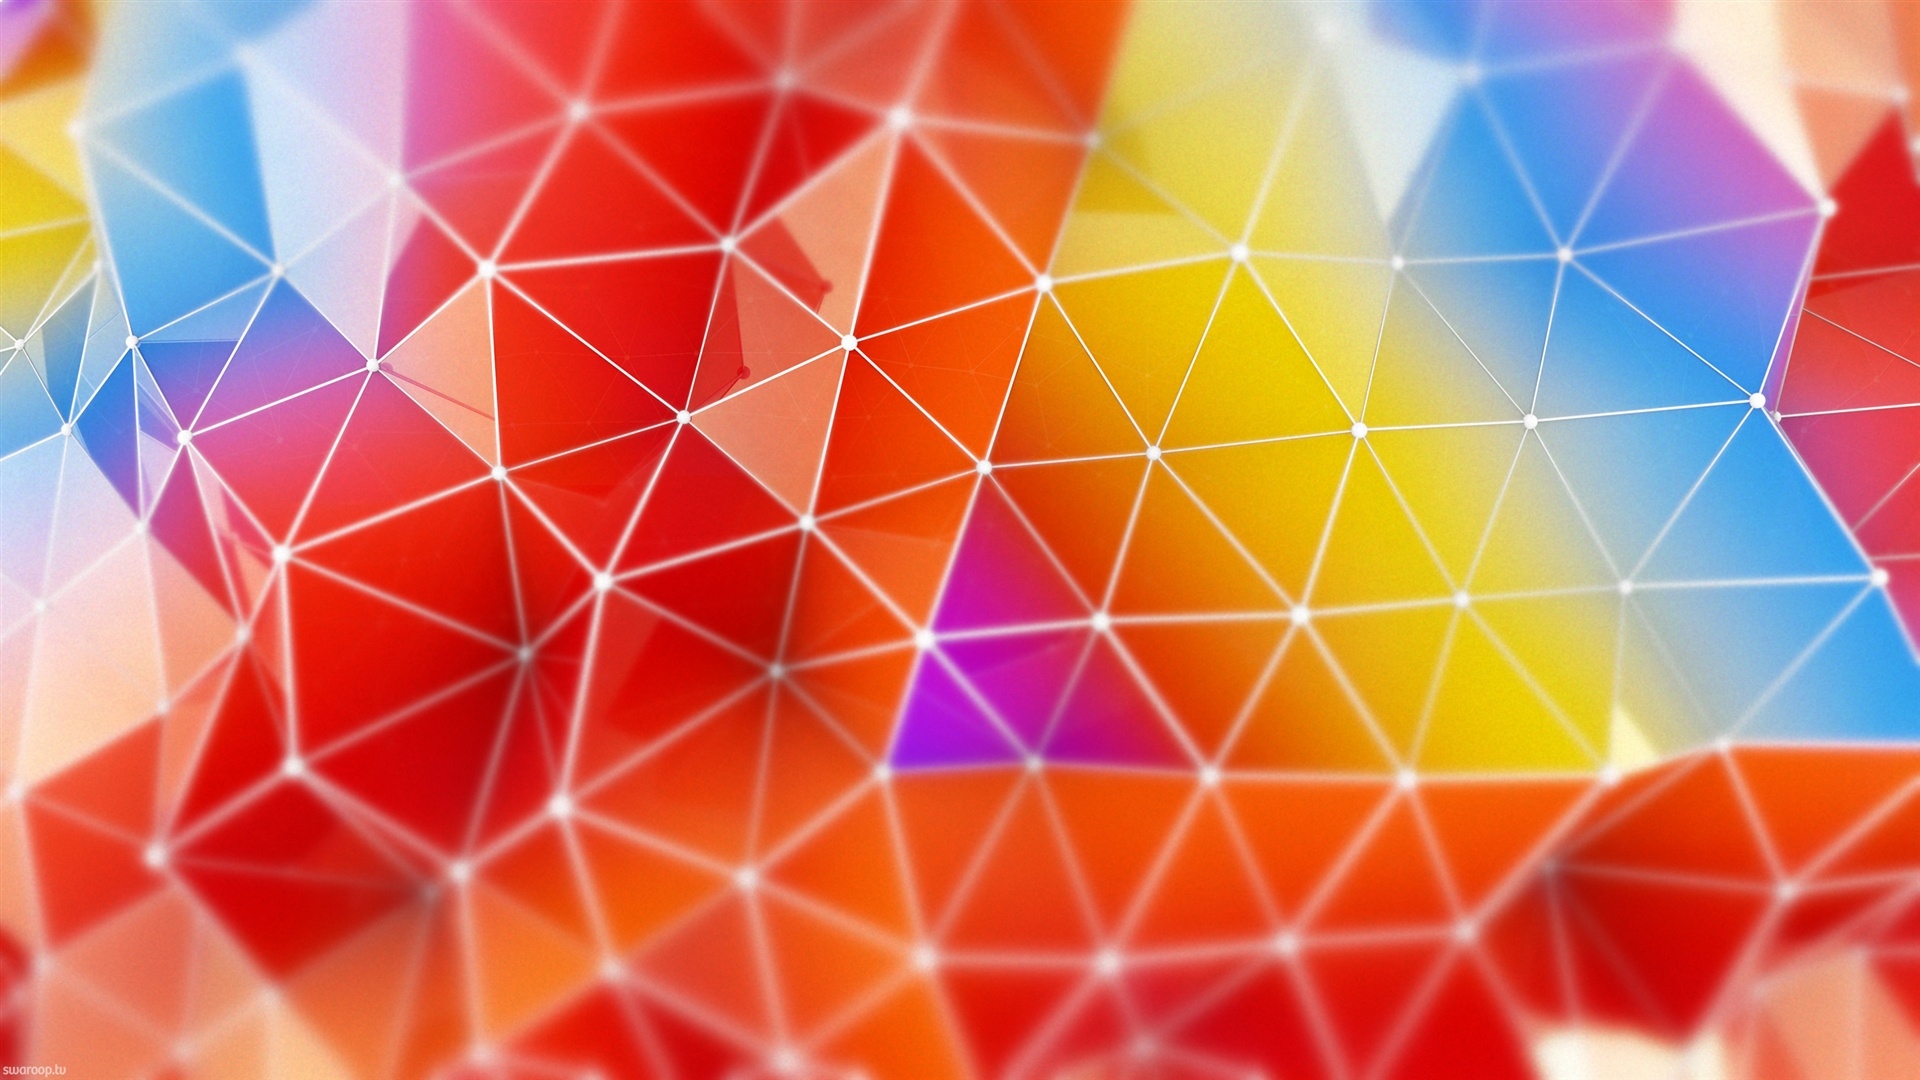 Render Abstract Triangle Colors 750x1334 Iphone 8 7 6 6s